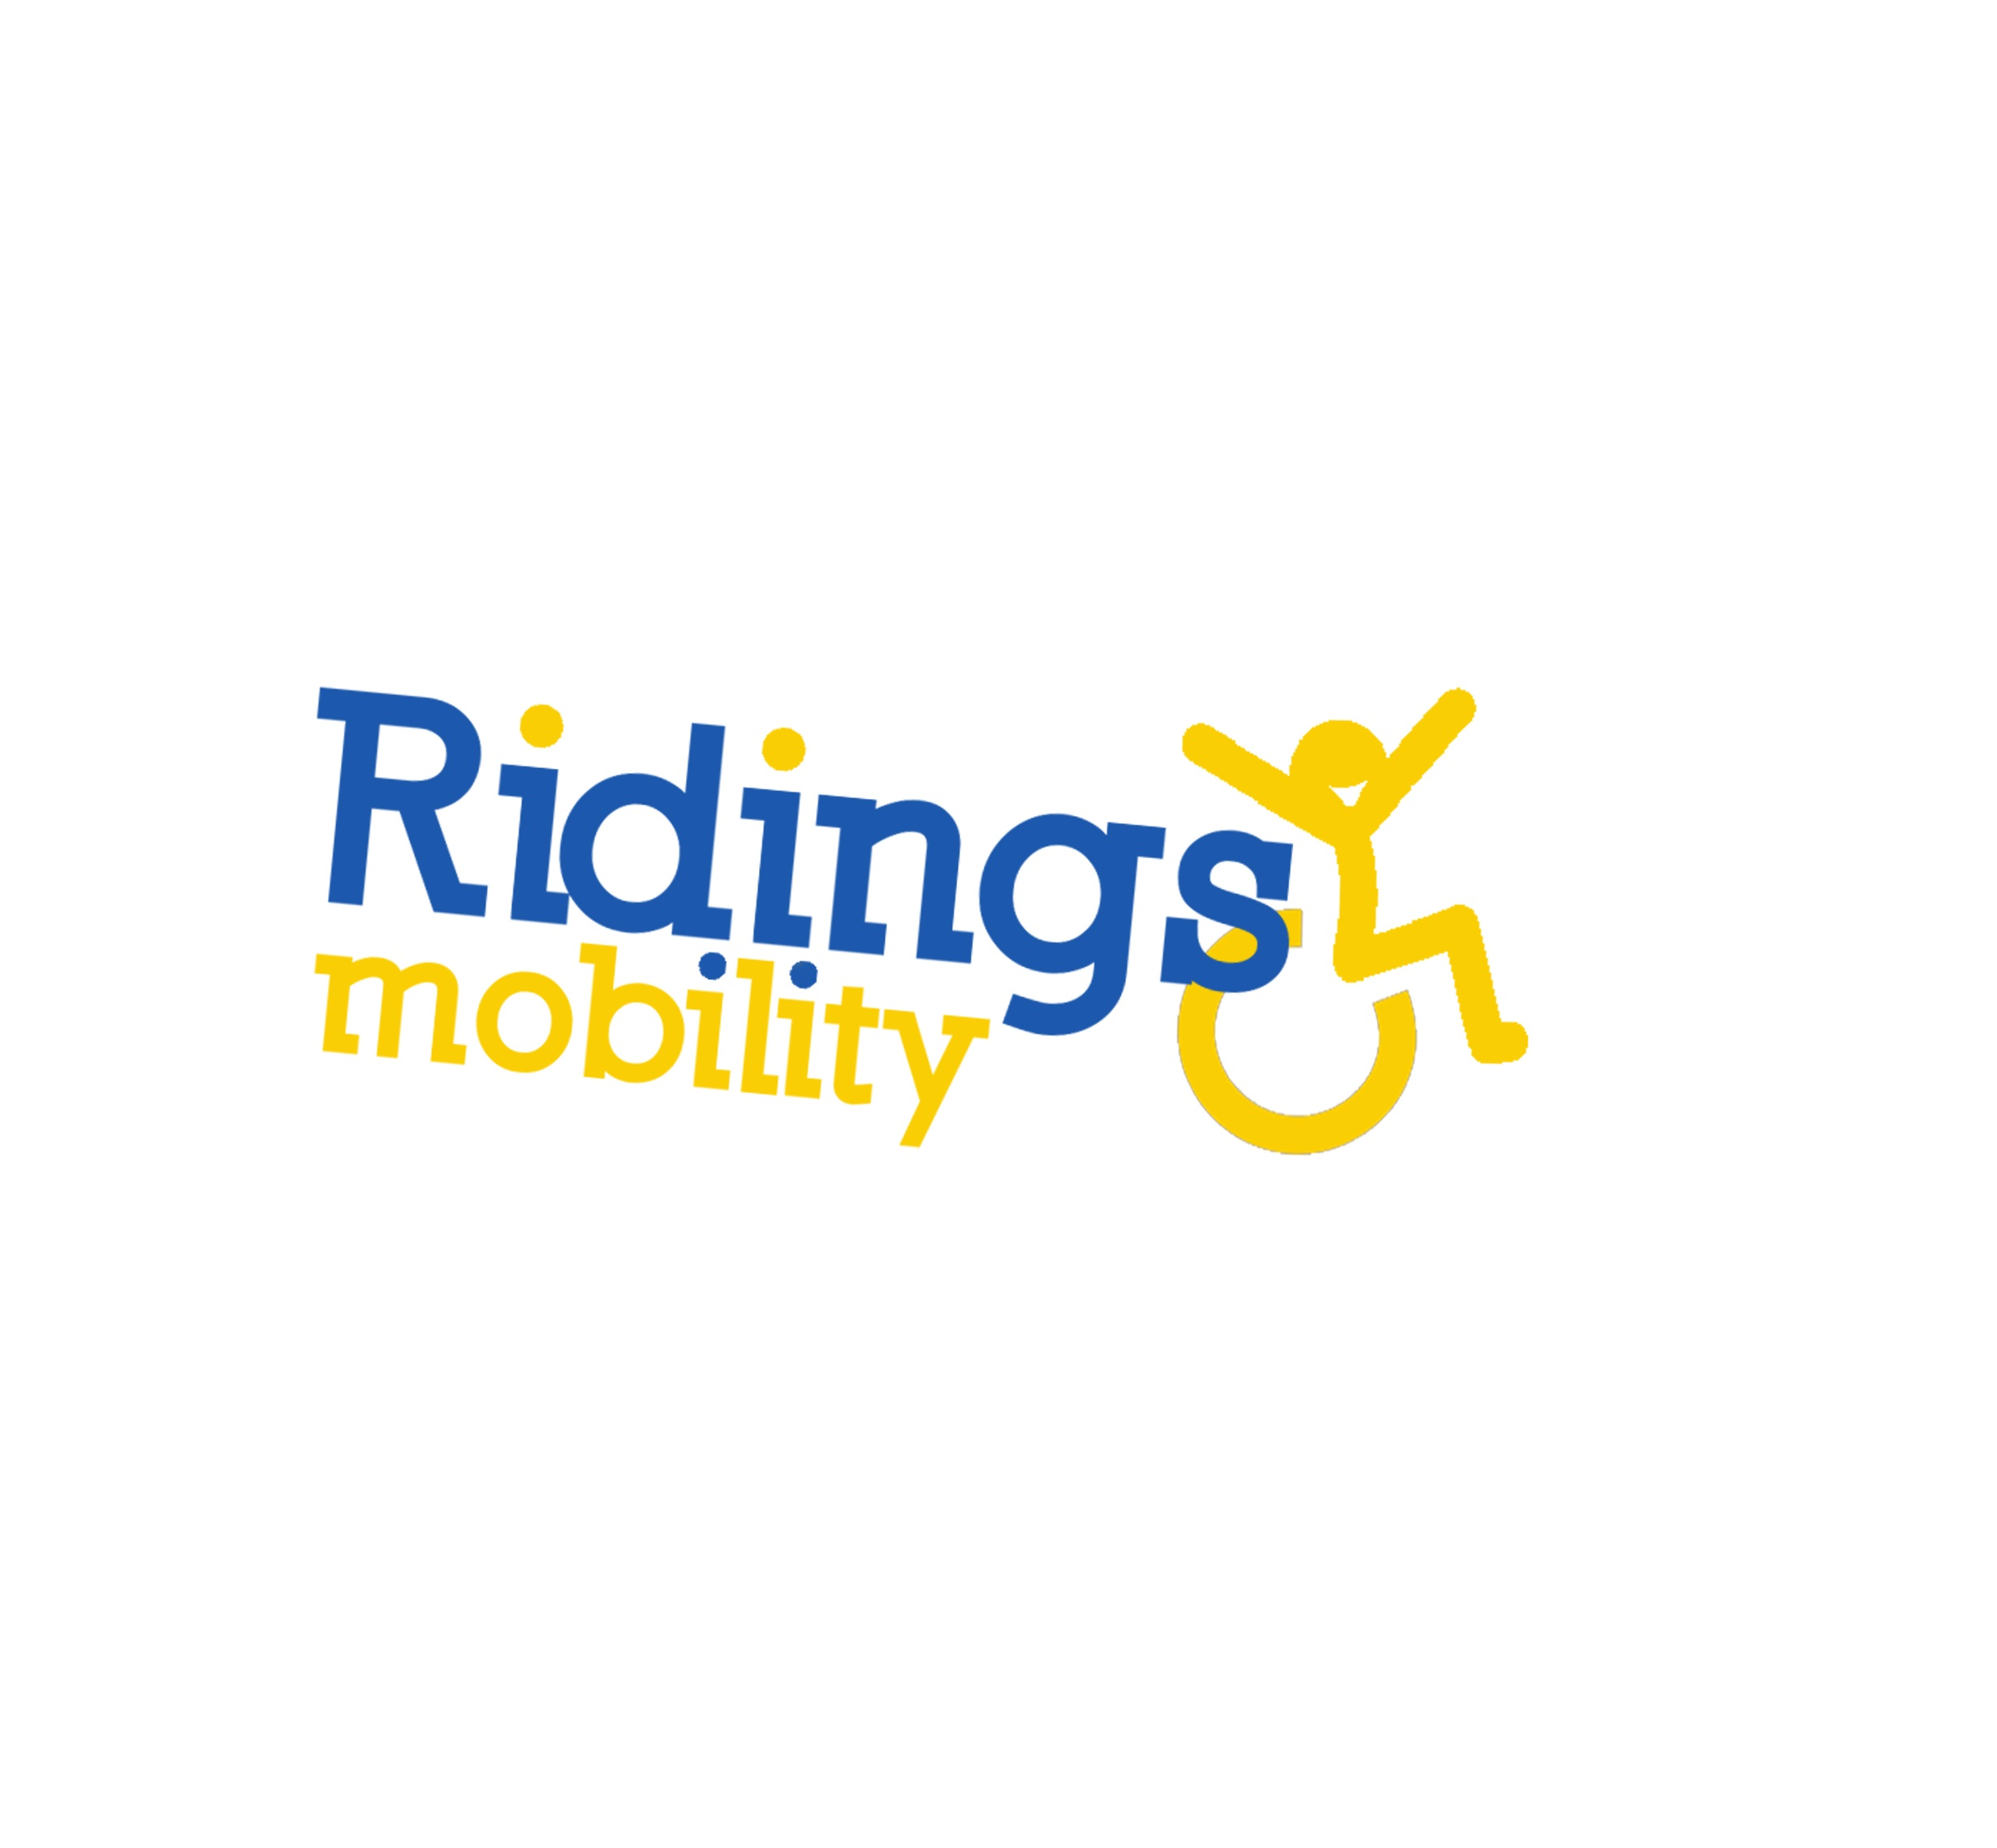 ridings mobility 2.jpg